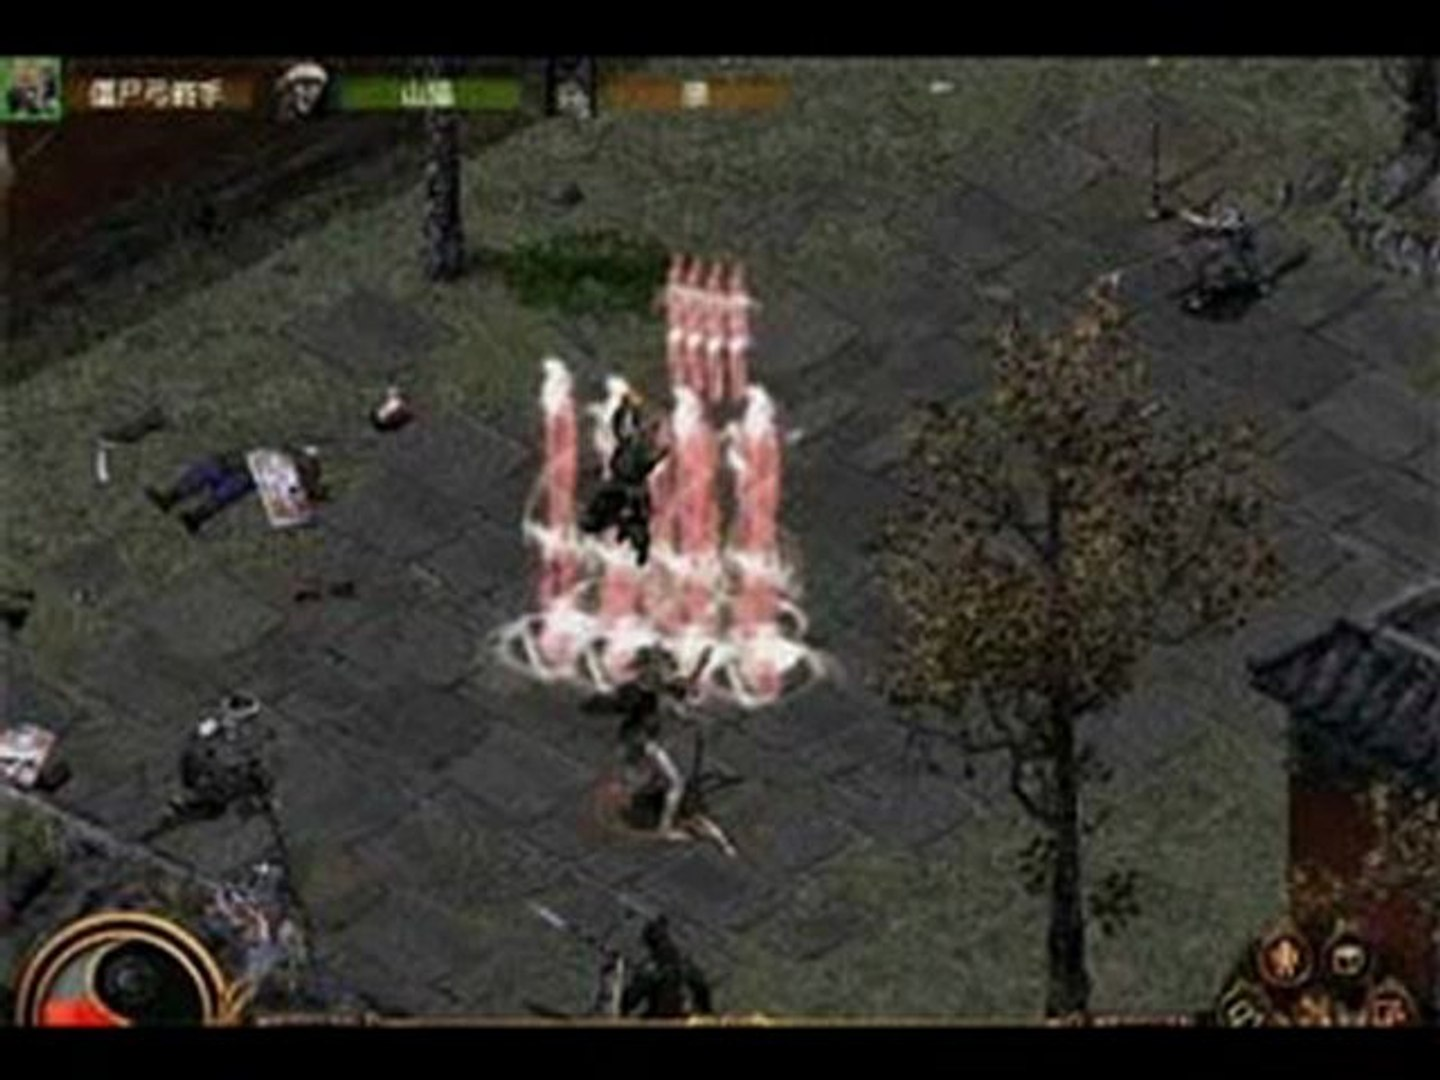 Blade and Sword 2 for PC + download link free and only single link !  rpg game similiar to diablo 2